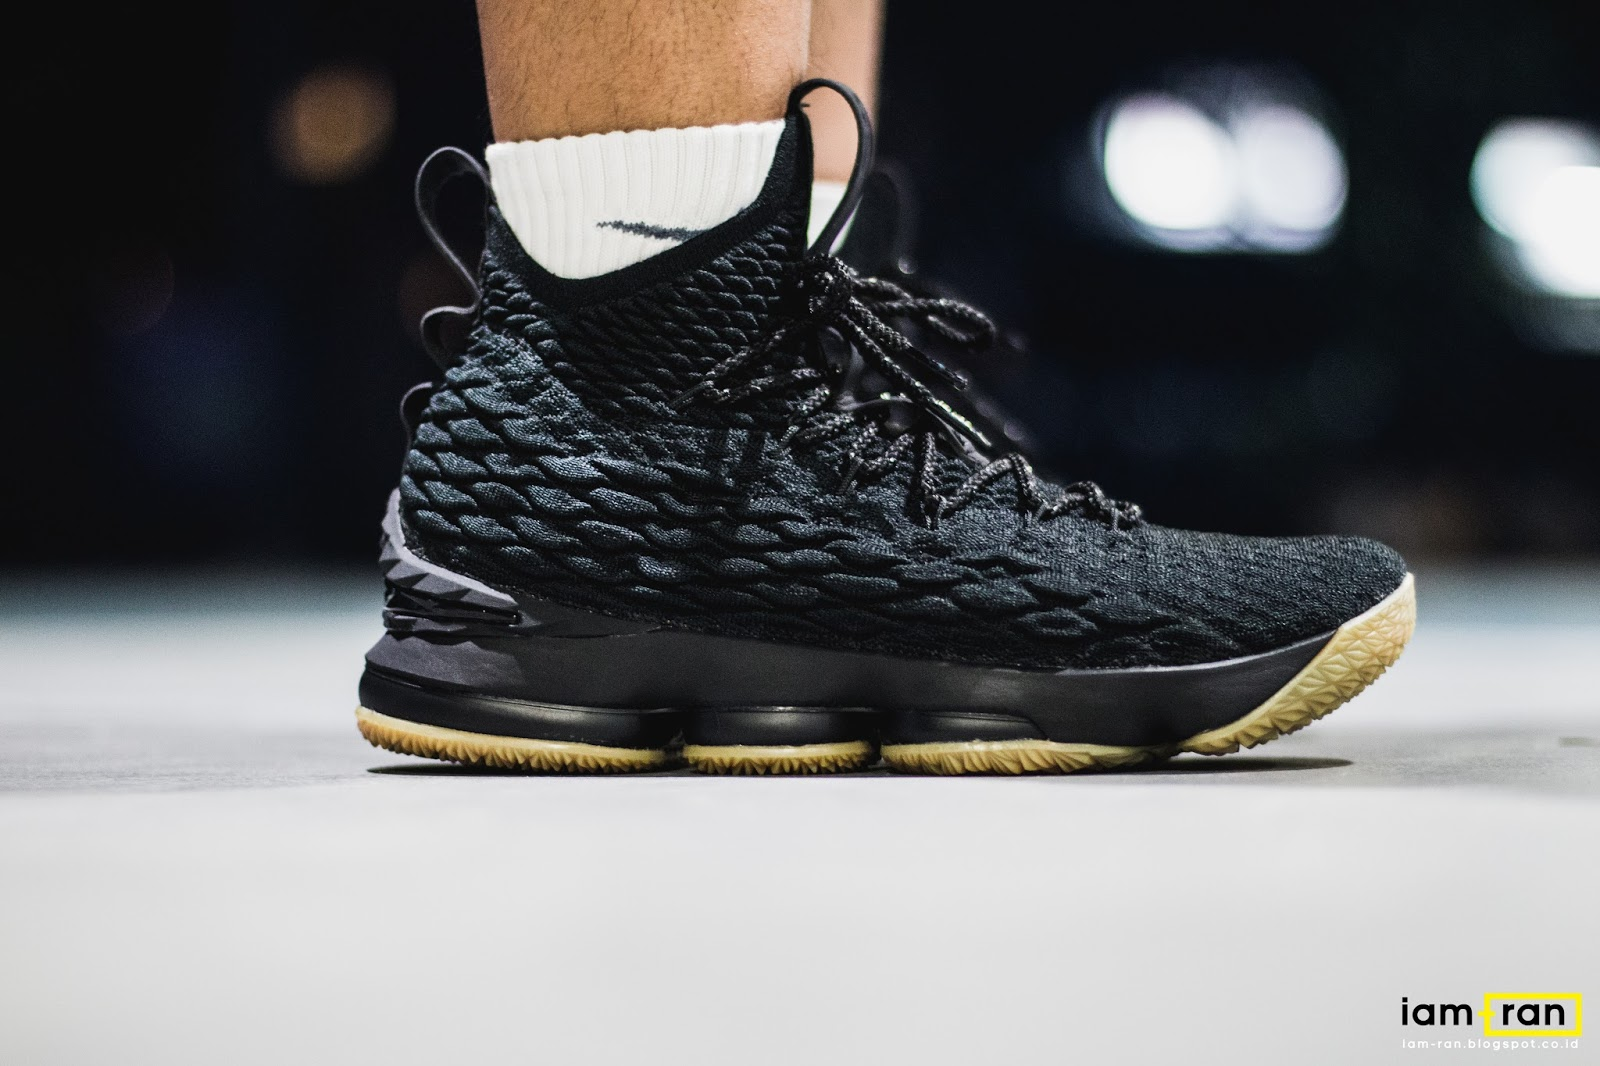 eb3be411ce2 IAM-RAN  ON FEET   Polo - Nike LeBron 15